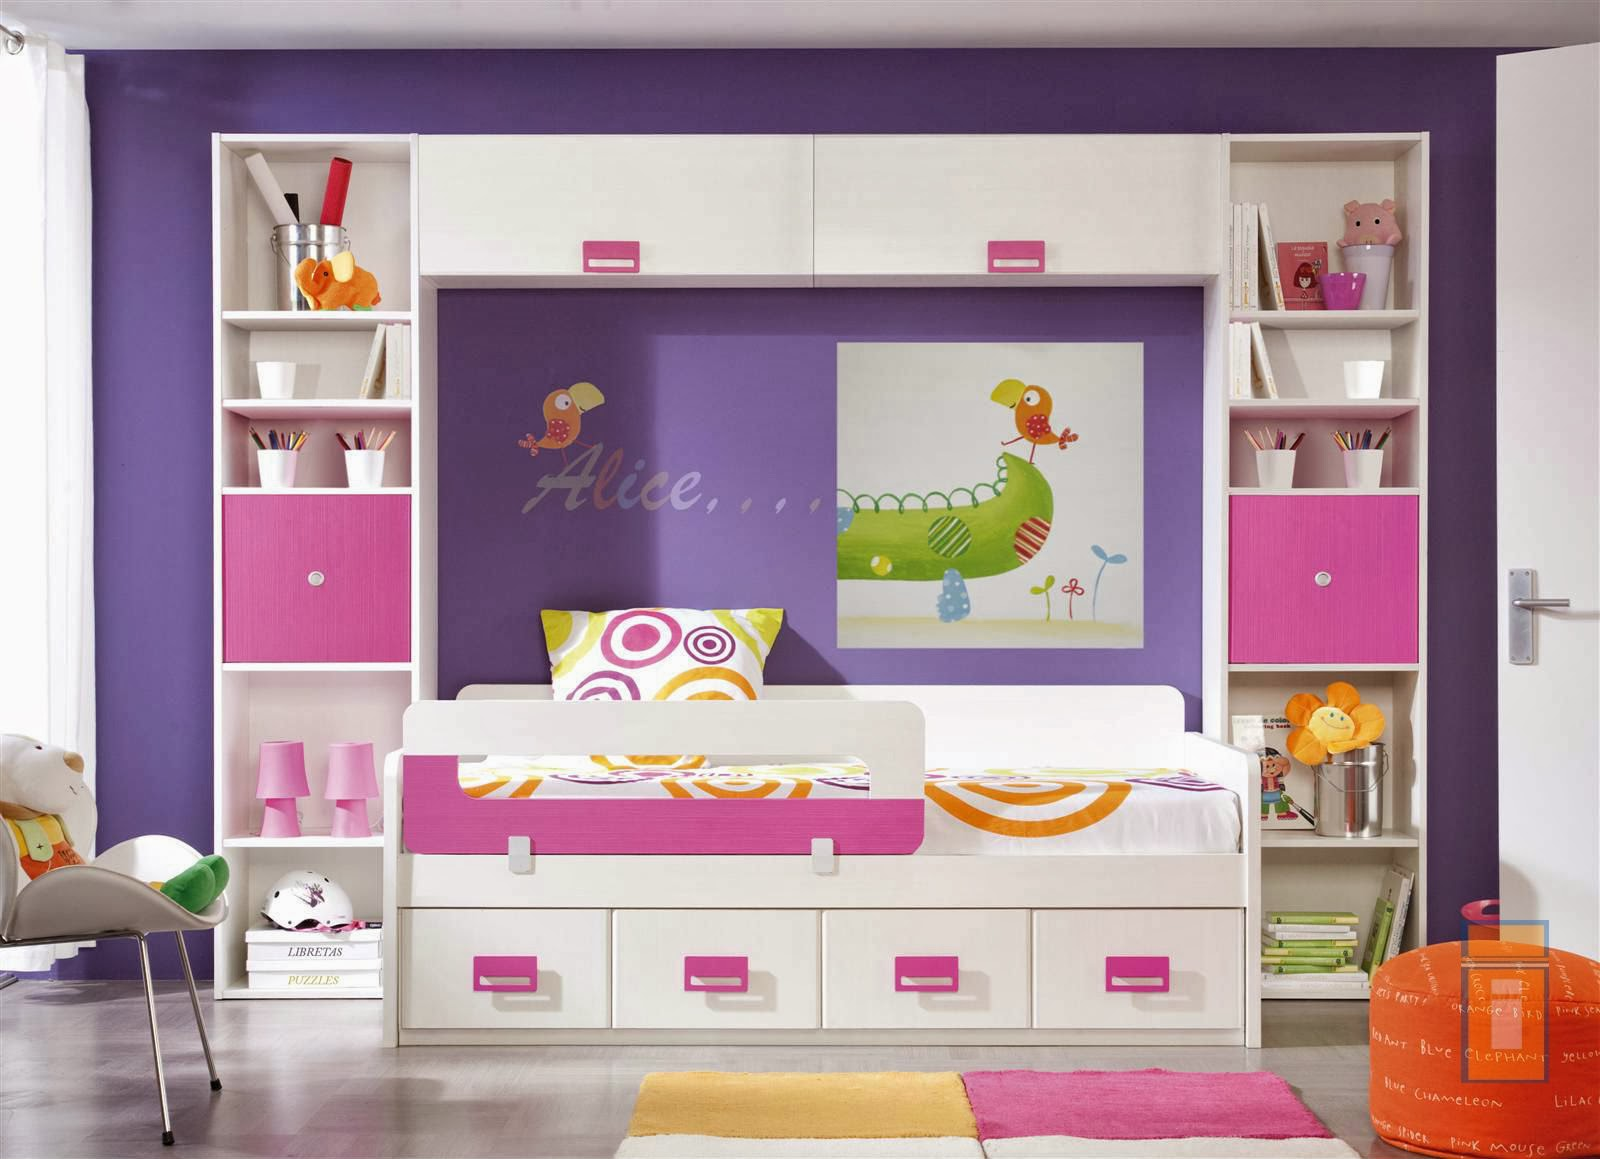 Habitaciones infantiles peque as 6 ideas creativas - Camas pequenas infantiles ...